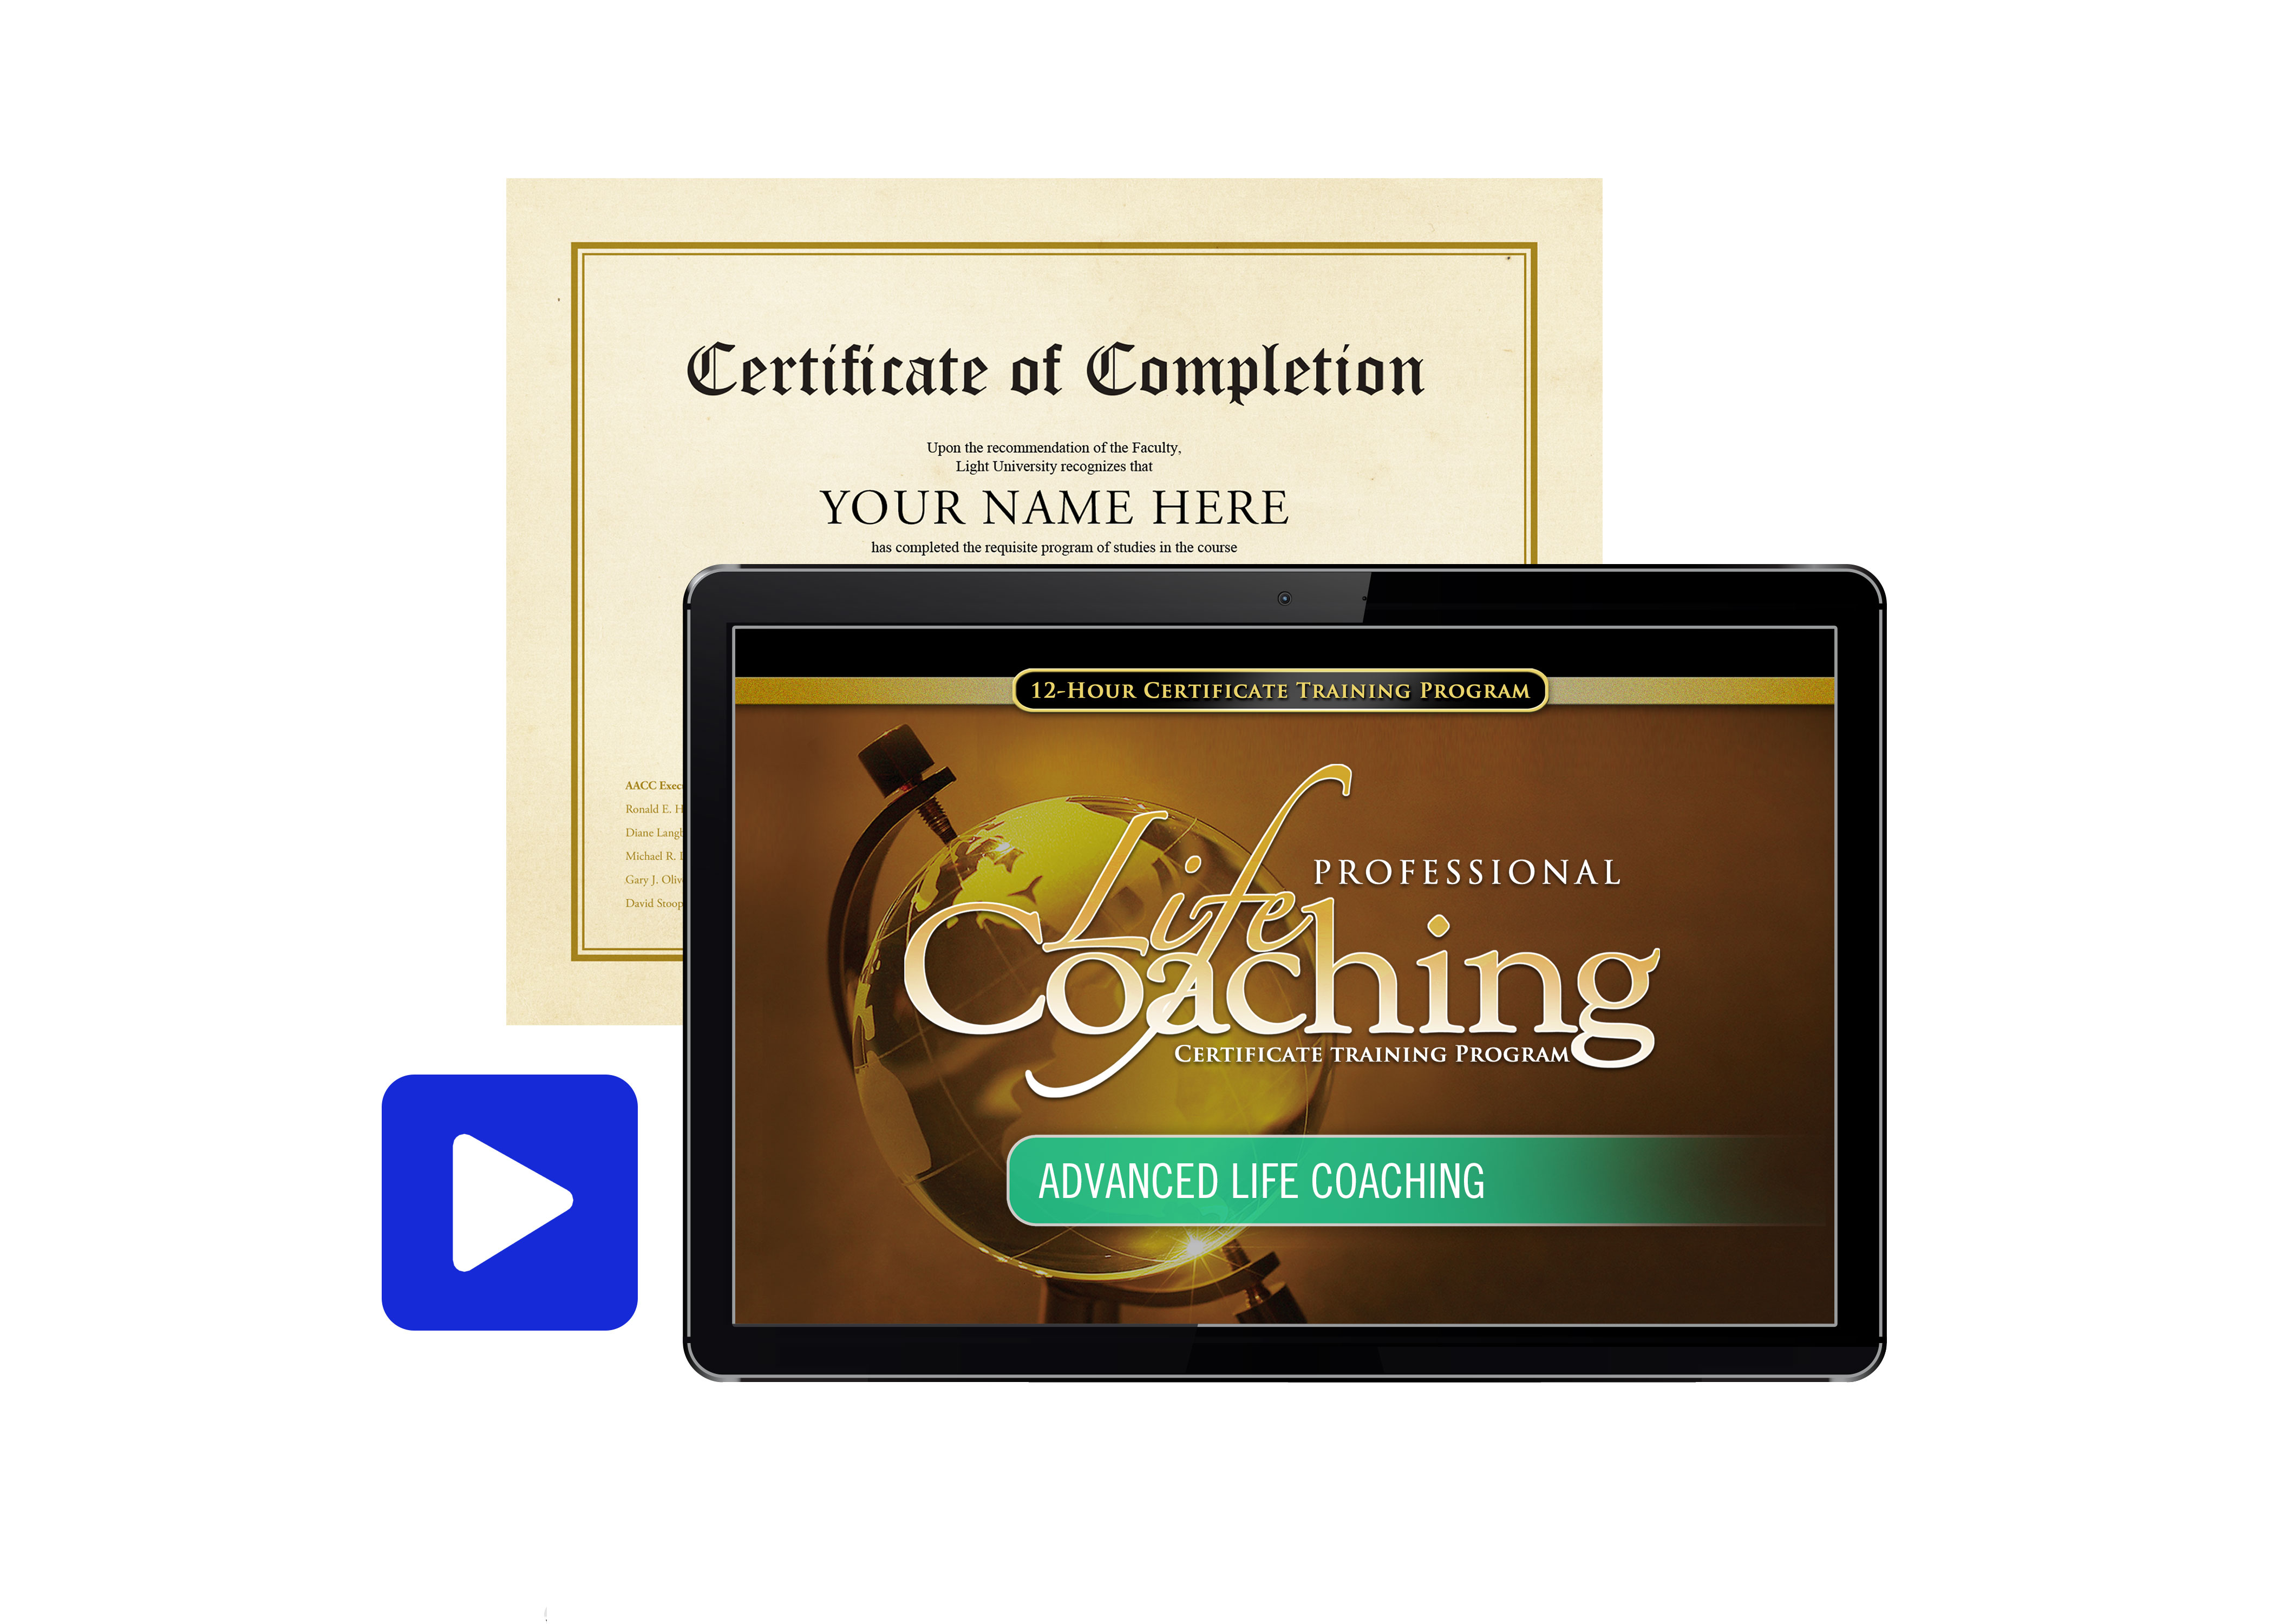 Advanced Life Coaching